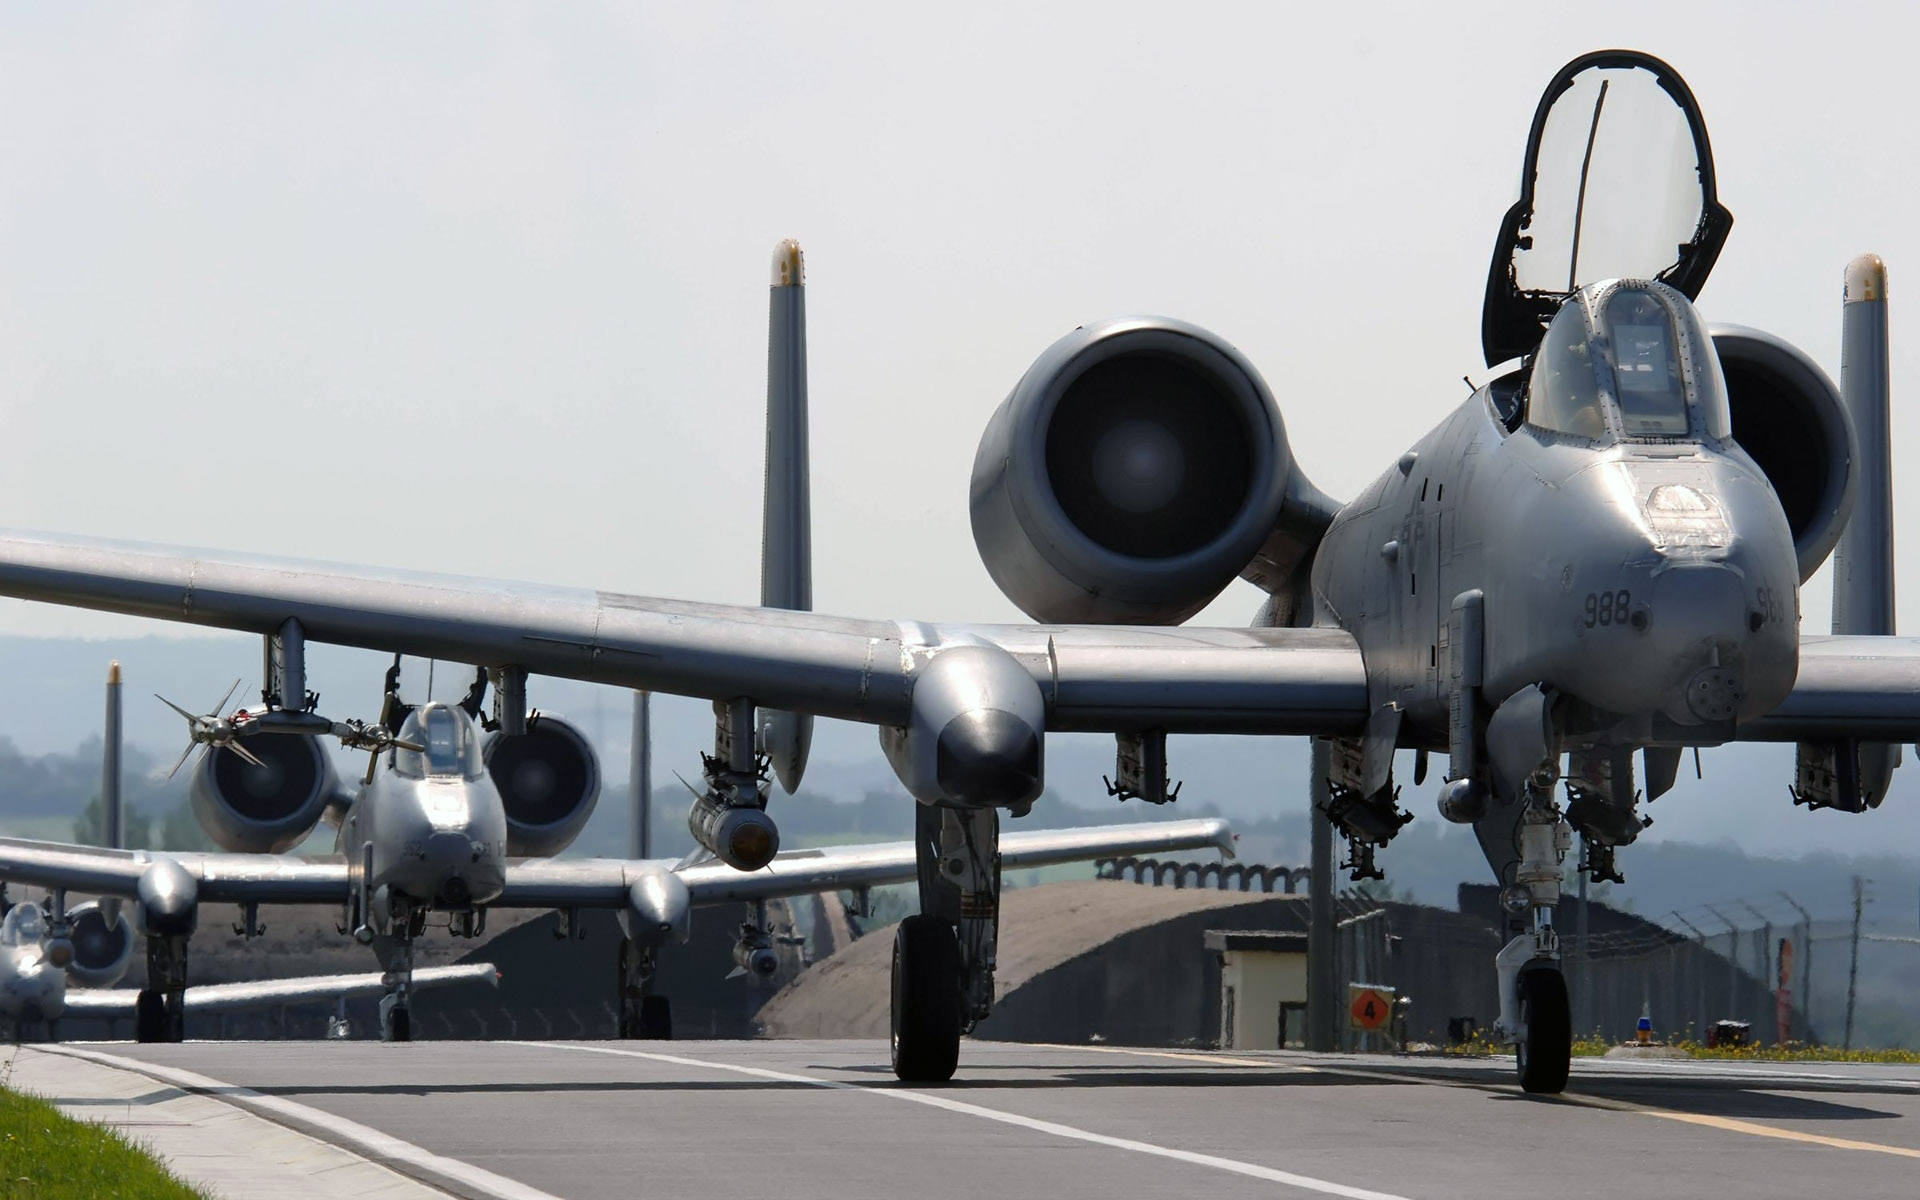 10 Thunderbolt II Aircrafts Wallpapers HD Wallpapers 1920x1200